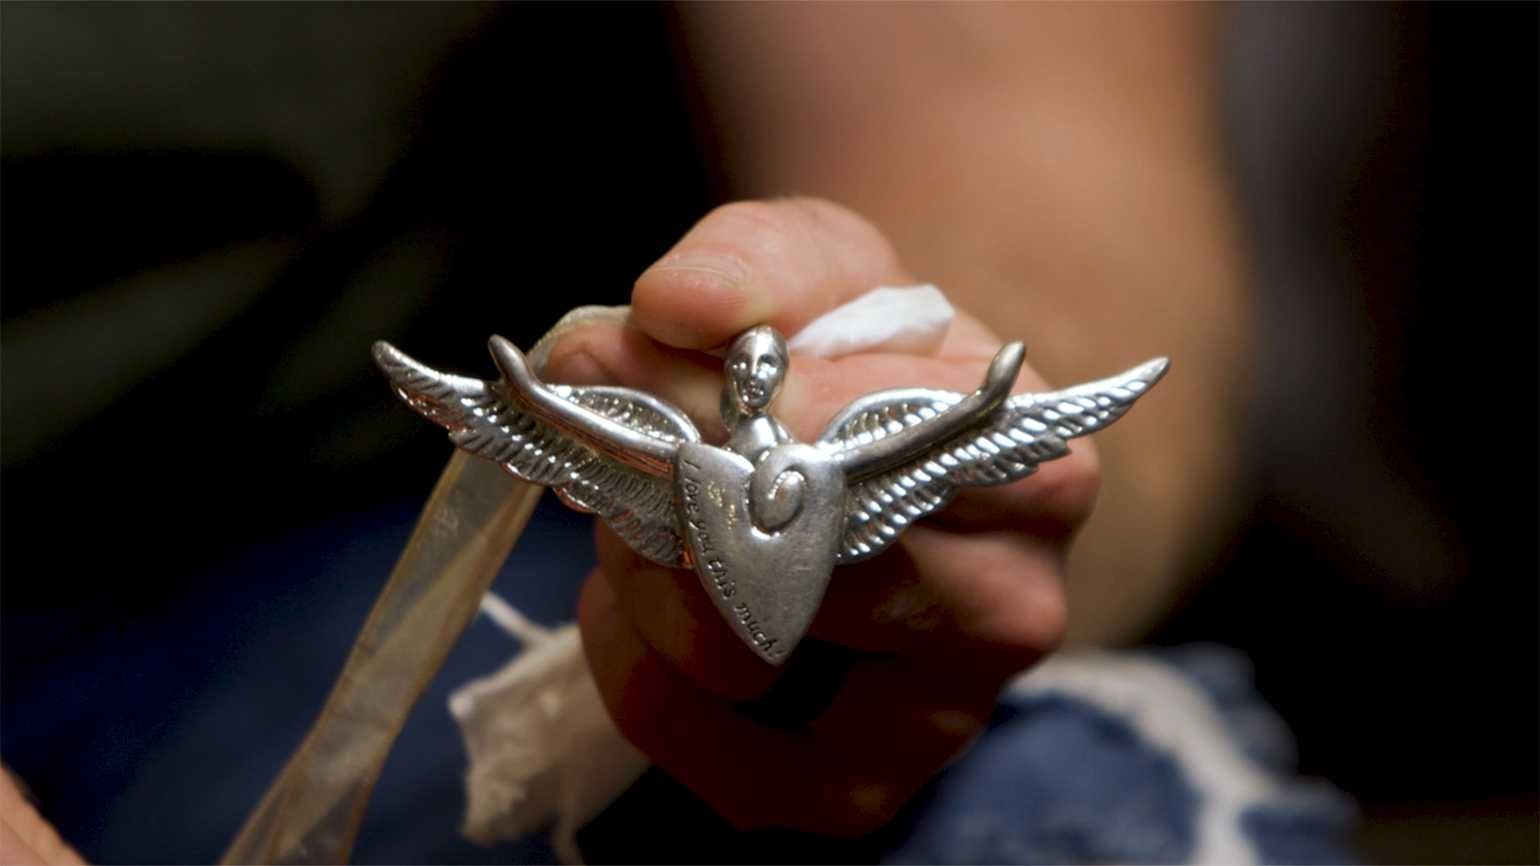 The angel charm Micah Herndon received from his mother